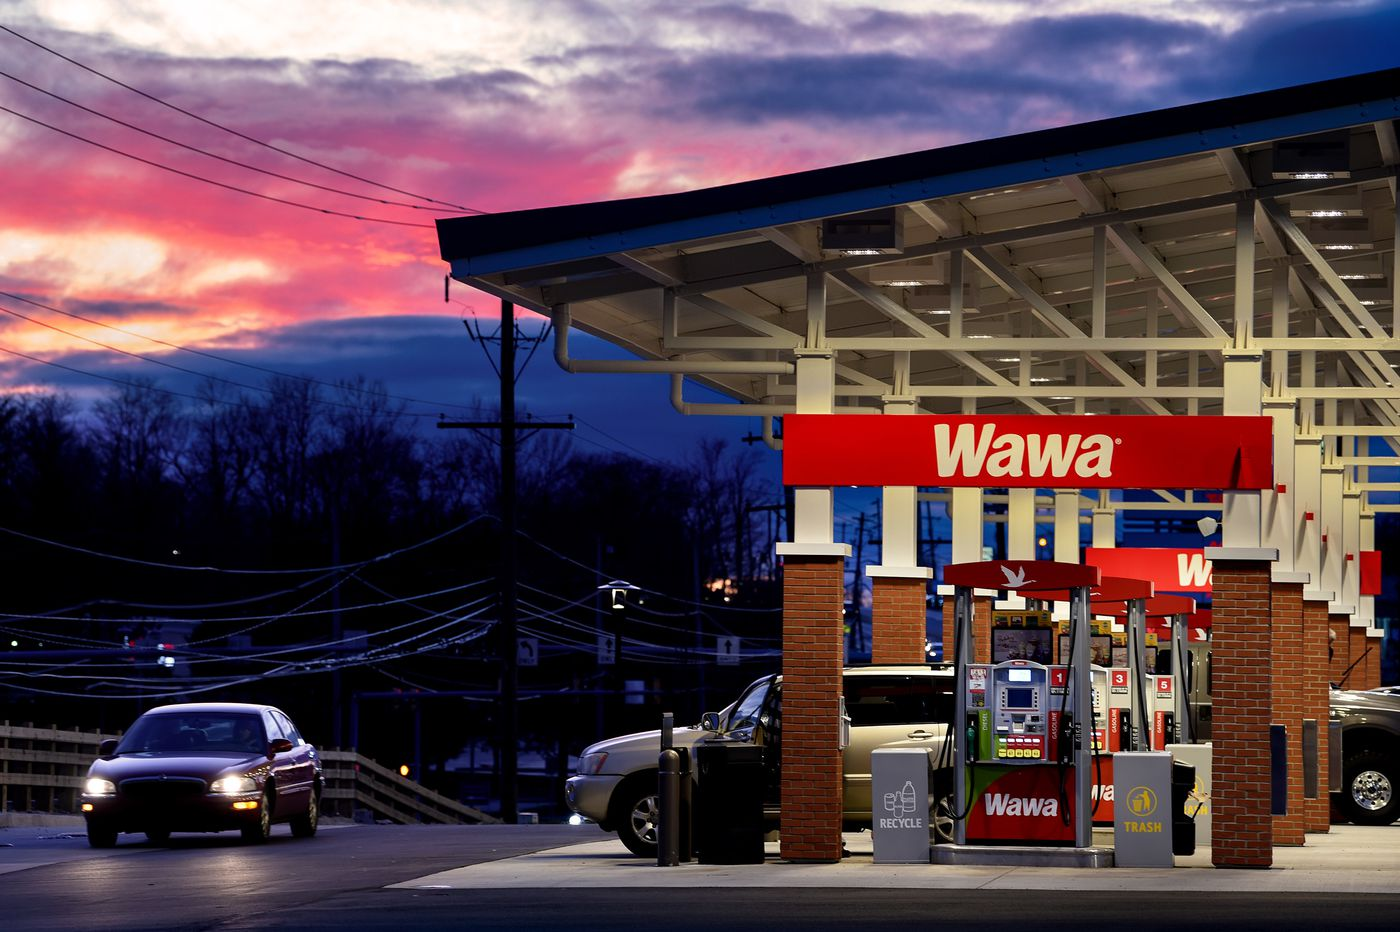 Just because we love Wawa doesn't mean we should let them handle our data insecurely | Opinion